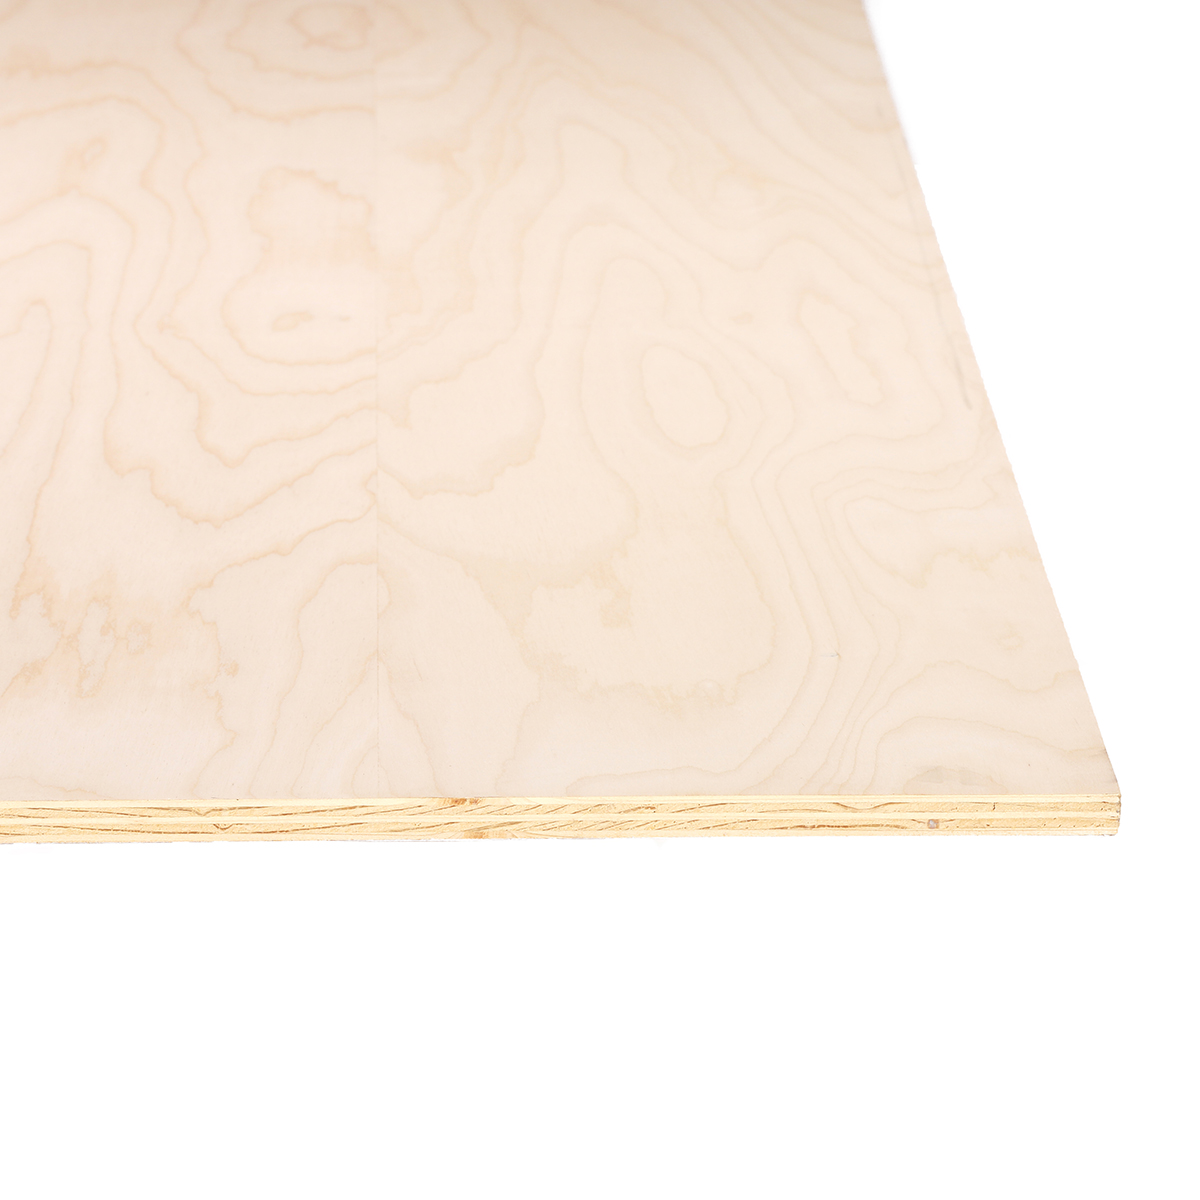 3 4 birch 4 x8 plywood g2s made in usa rh bairdbrothers com where to buy cabinet grade plywood in florida where to buy cabinet grade plywood in canada